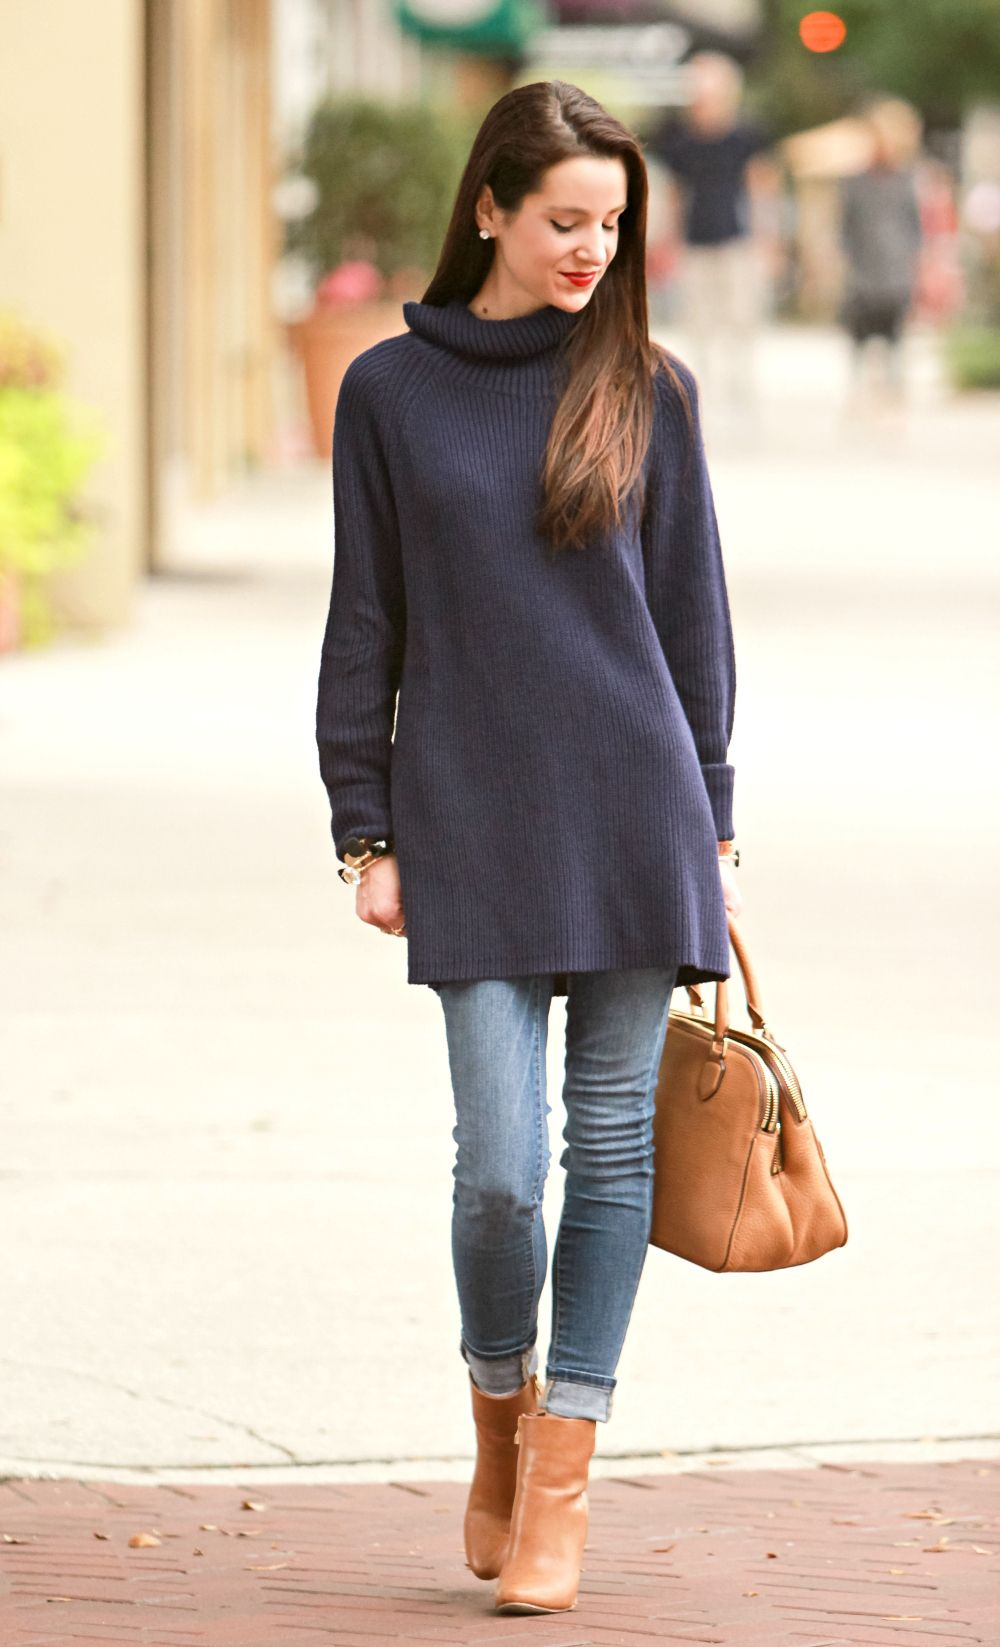 Sweater Weather: Oversized Navy Turtleneck Tunic | Debutante ...